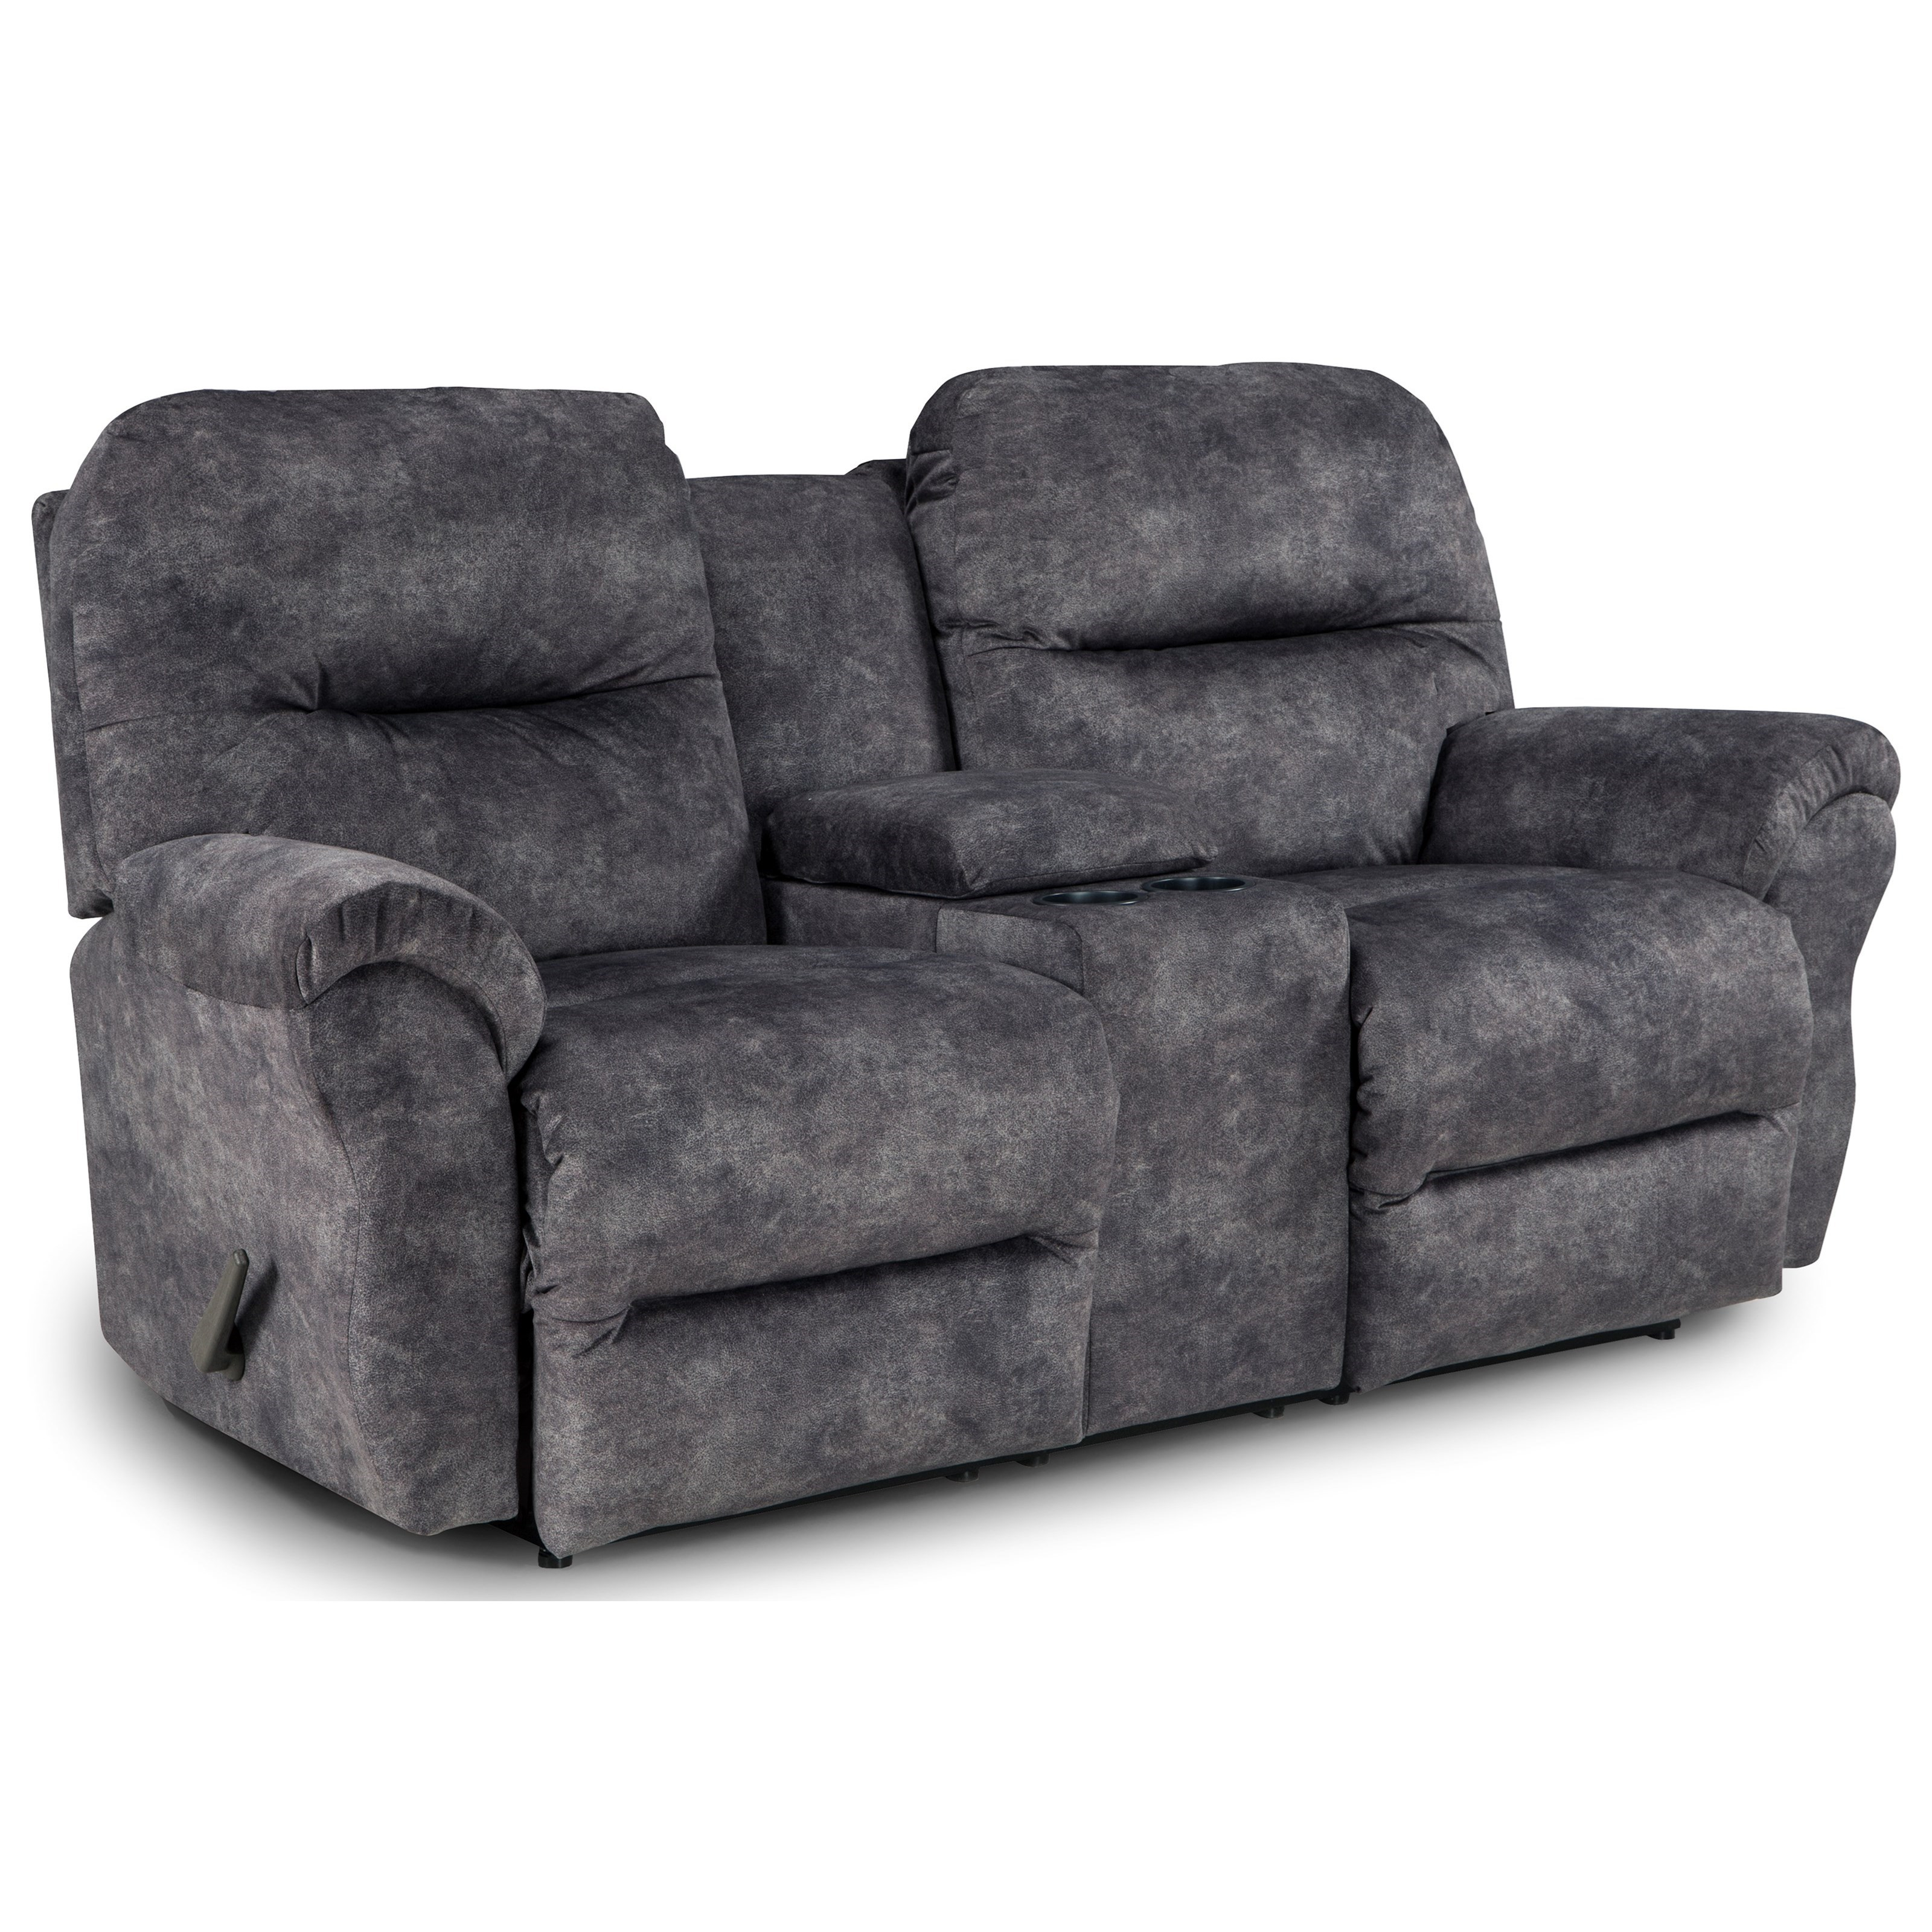 Bodie Power Reclining Loveseat by Best Home Furnishings at Baer's Furniture